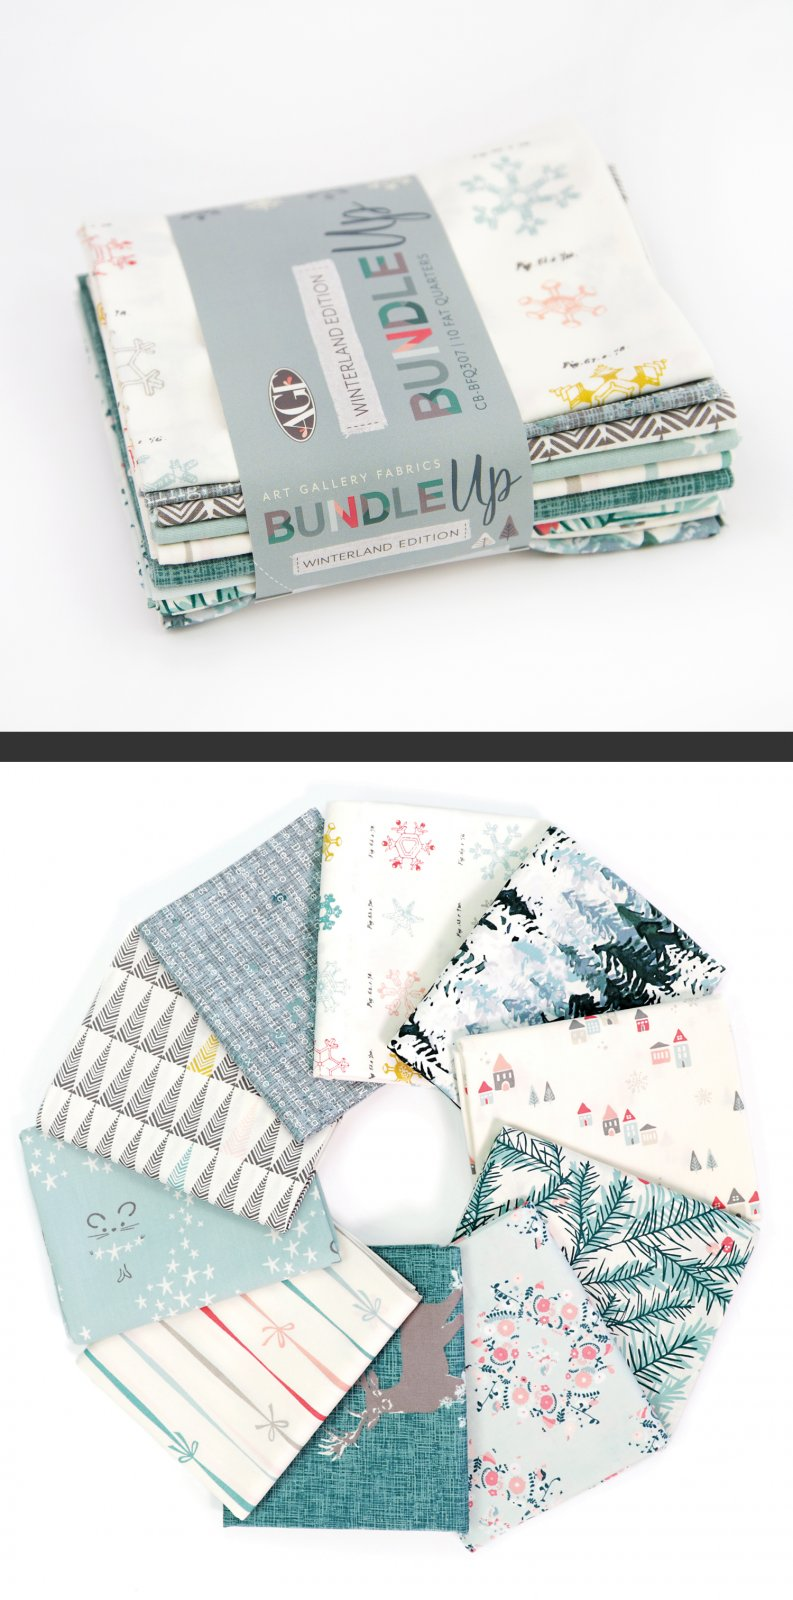 Art Gallery Bundle Up Winterland Fat Quarter Bundle 10PC